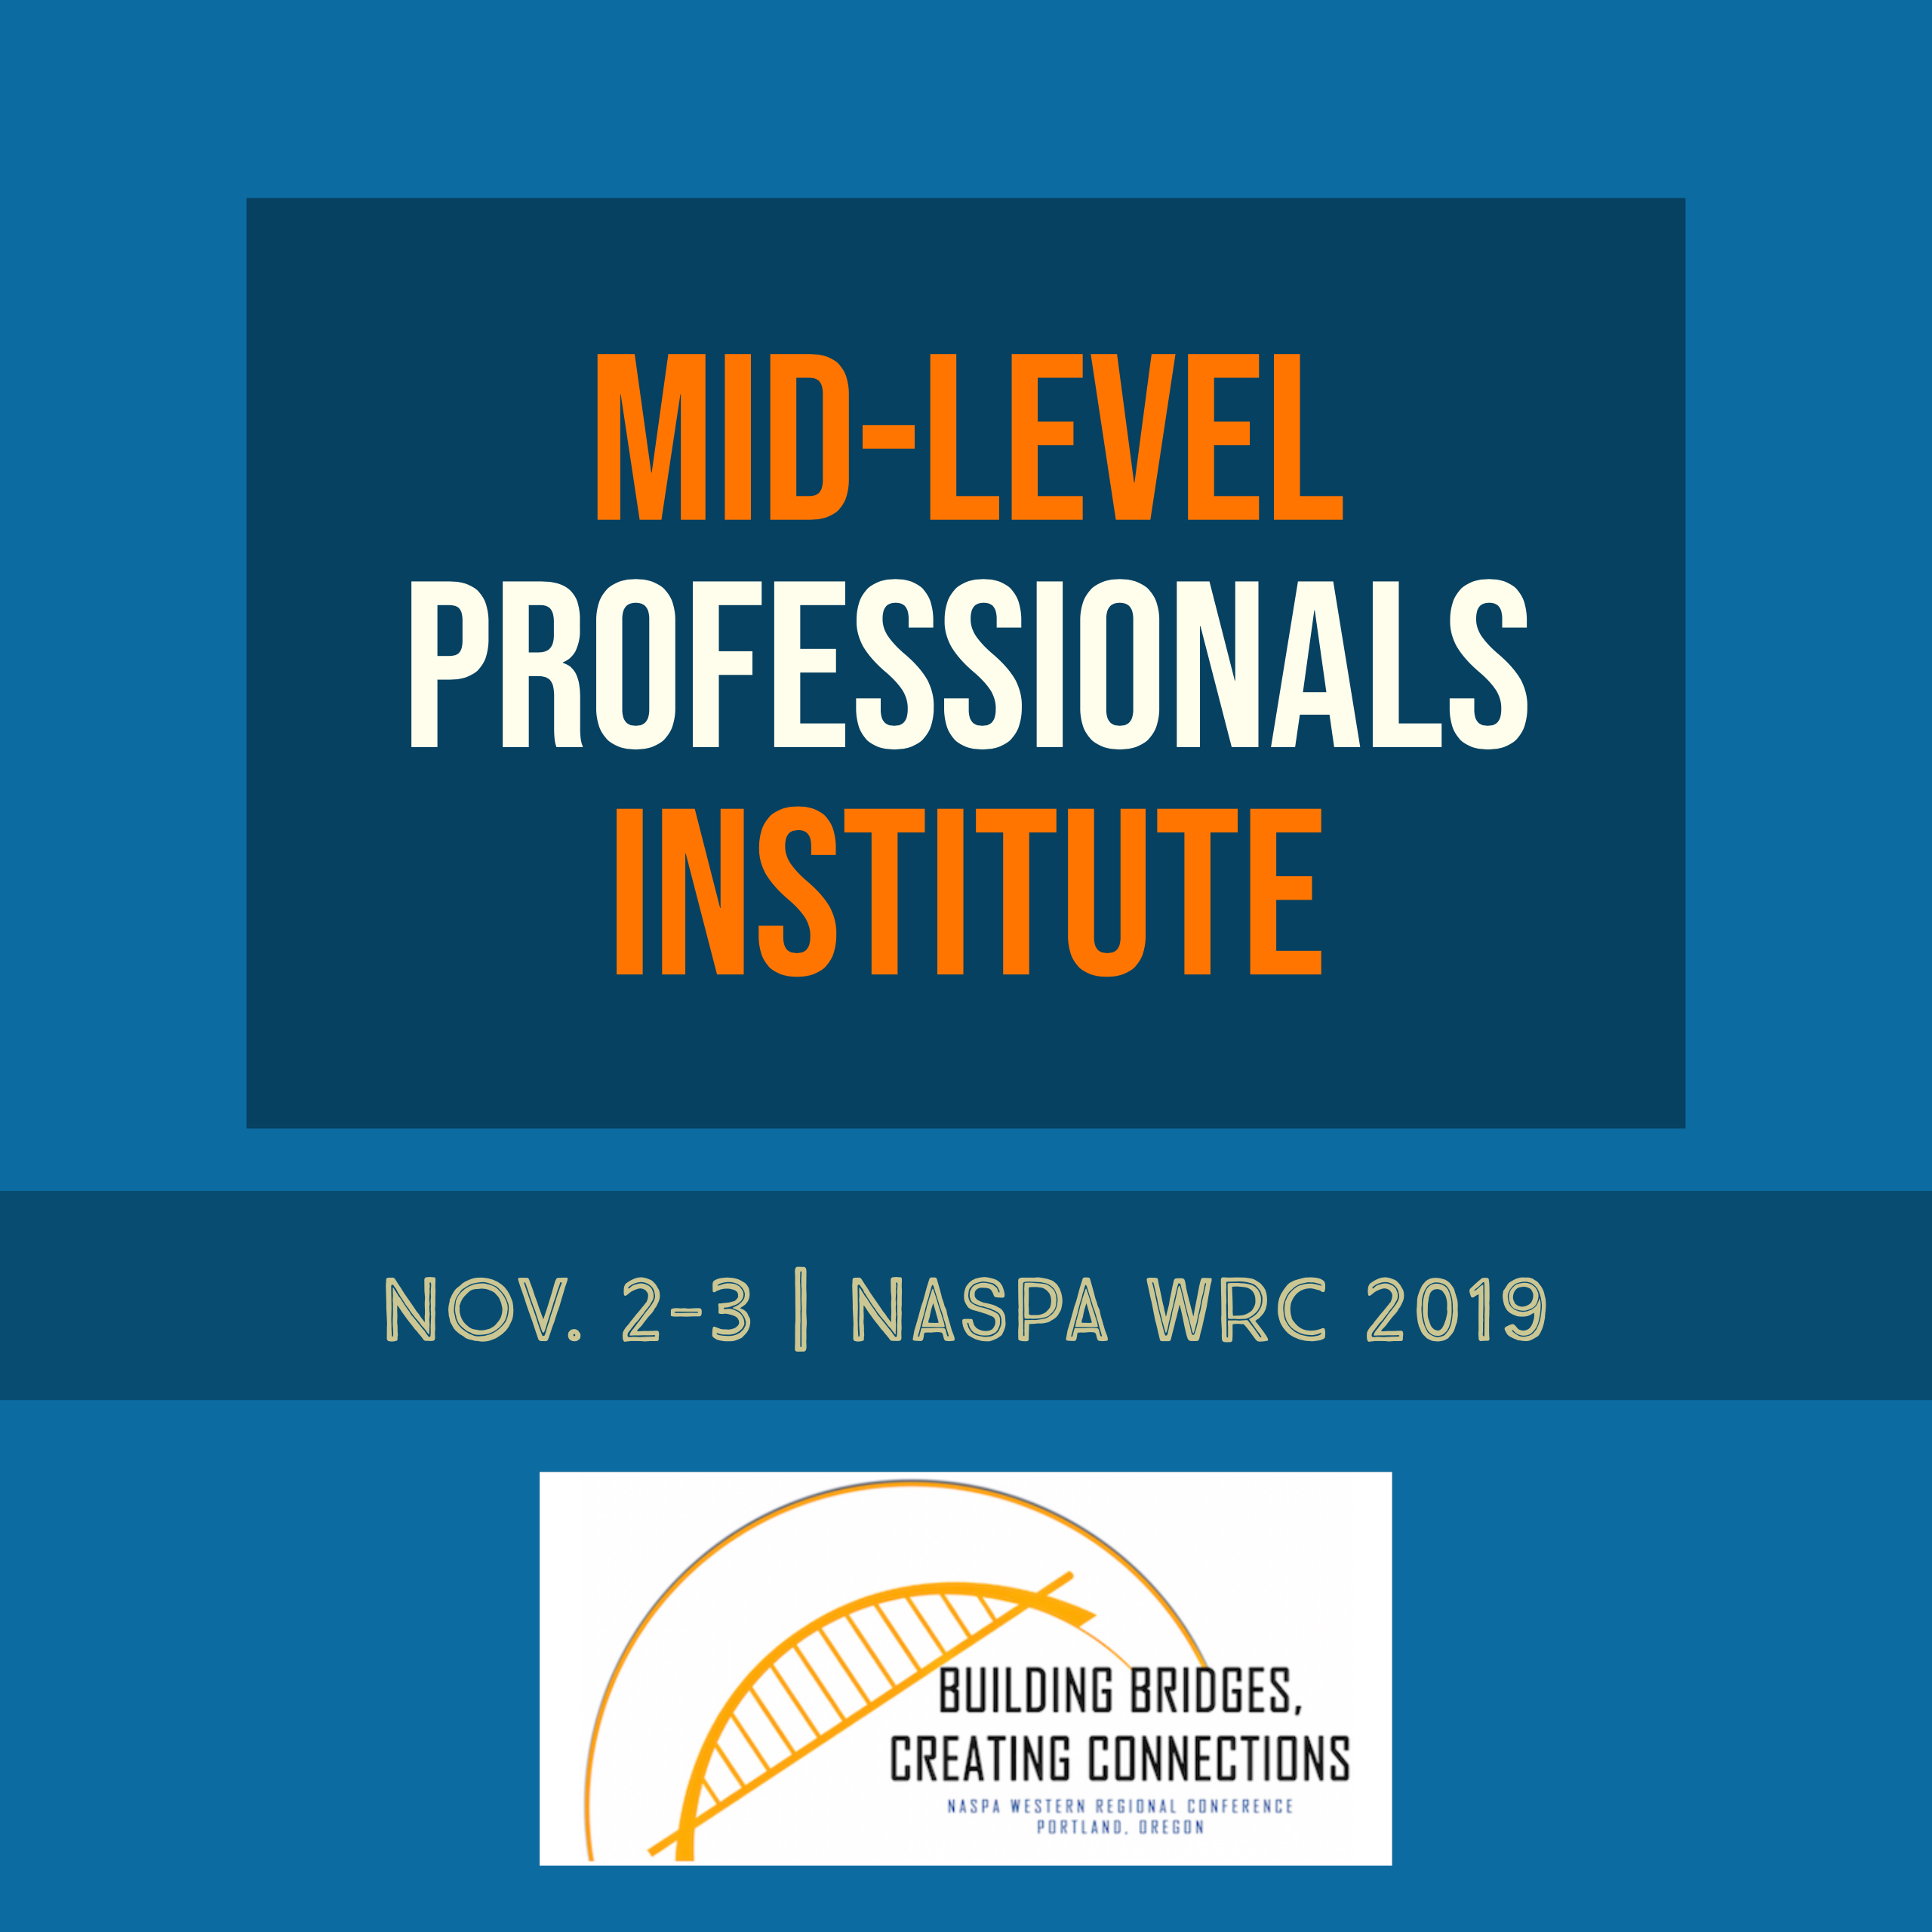 Mid-Level Professionals Institute